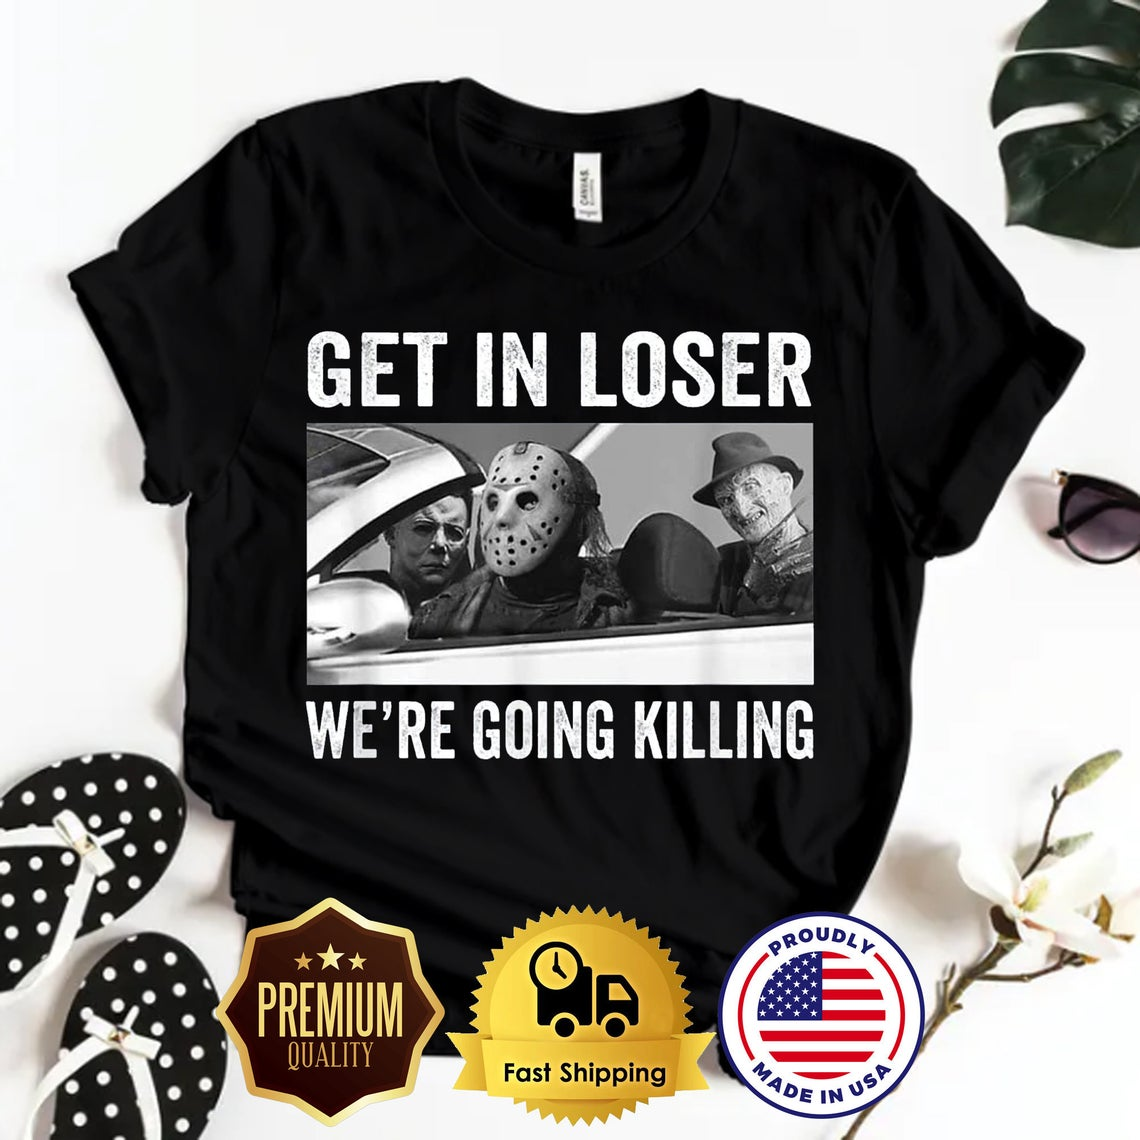 03 Horror Movie Characters Get In Loser Were Going Killing T-shirt